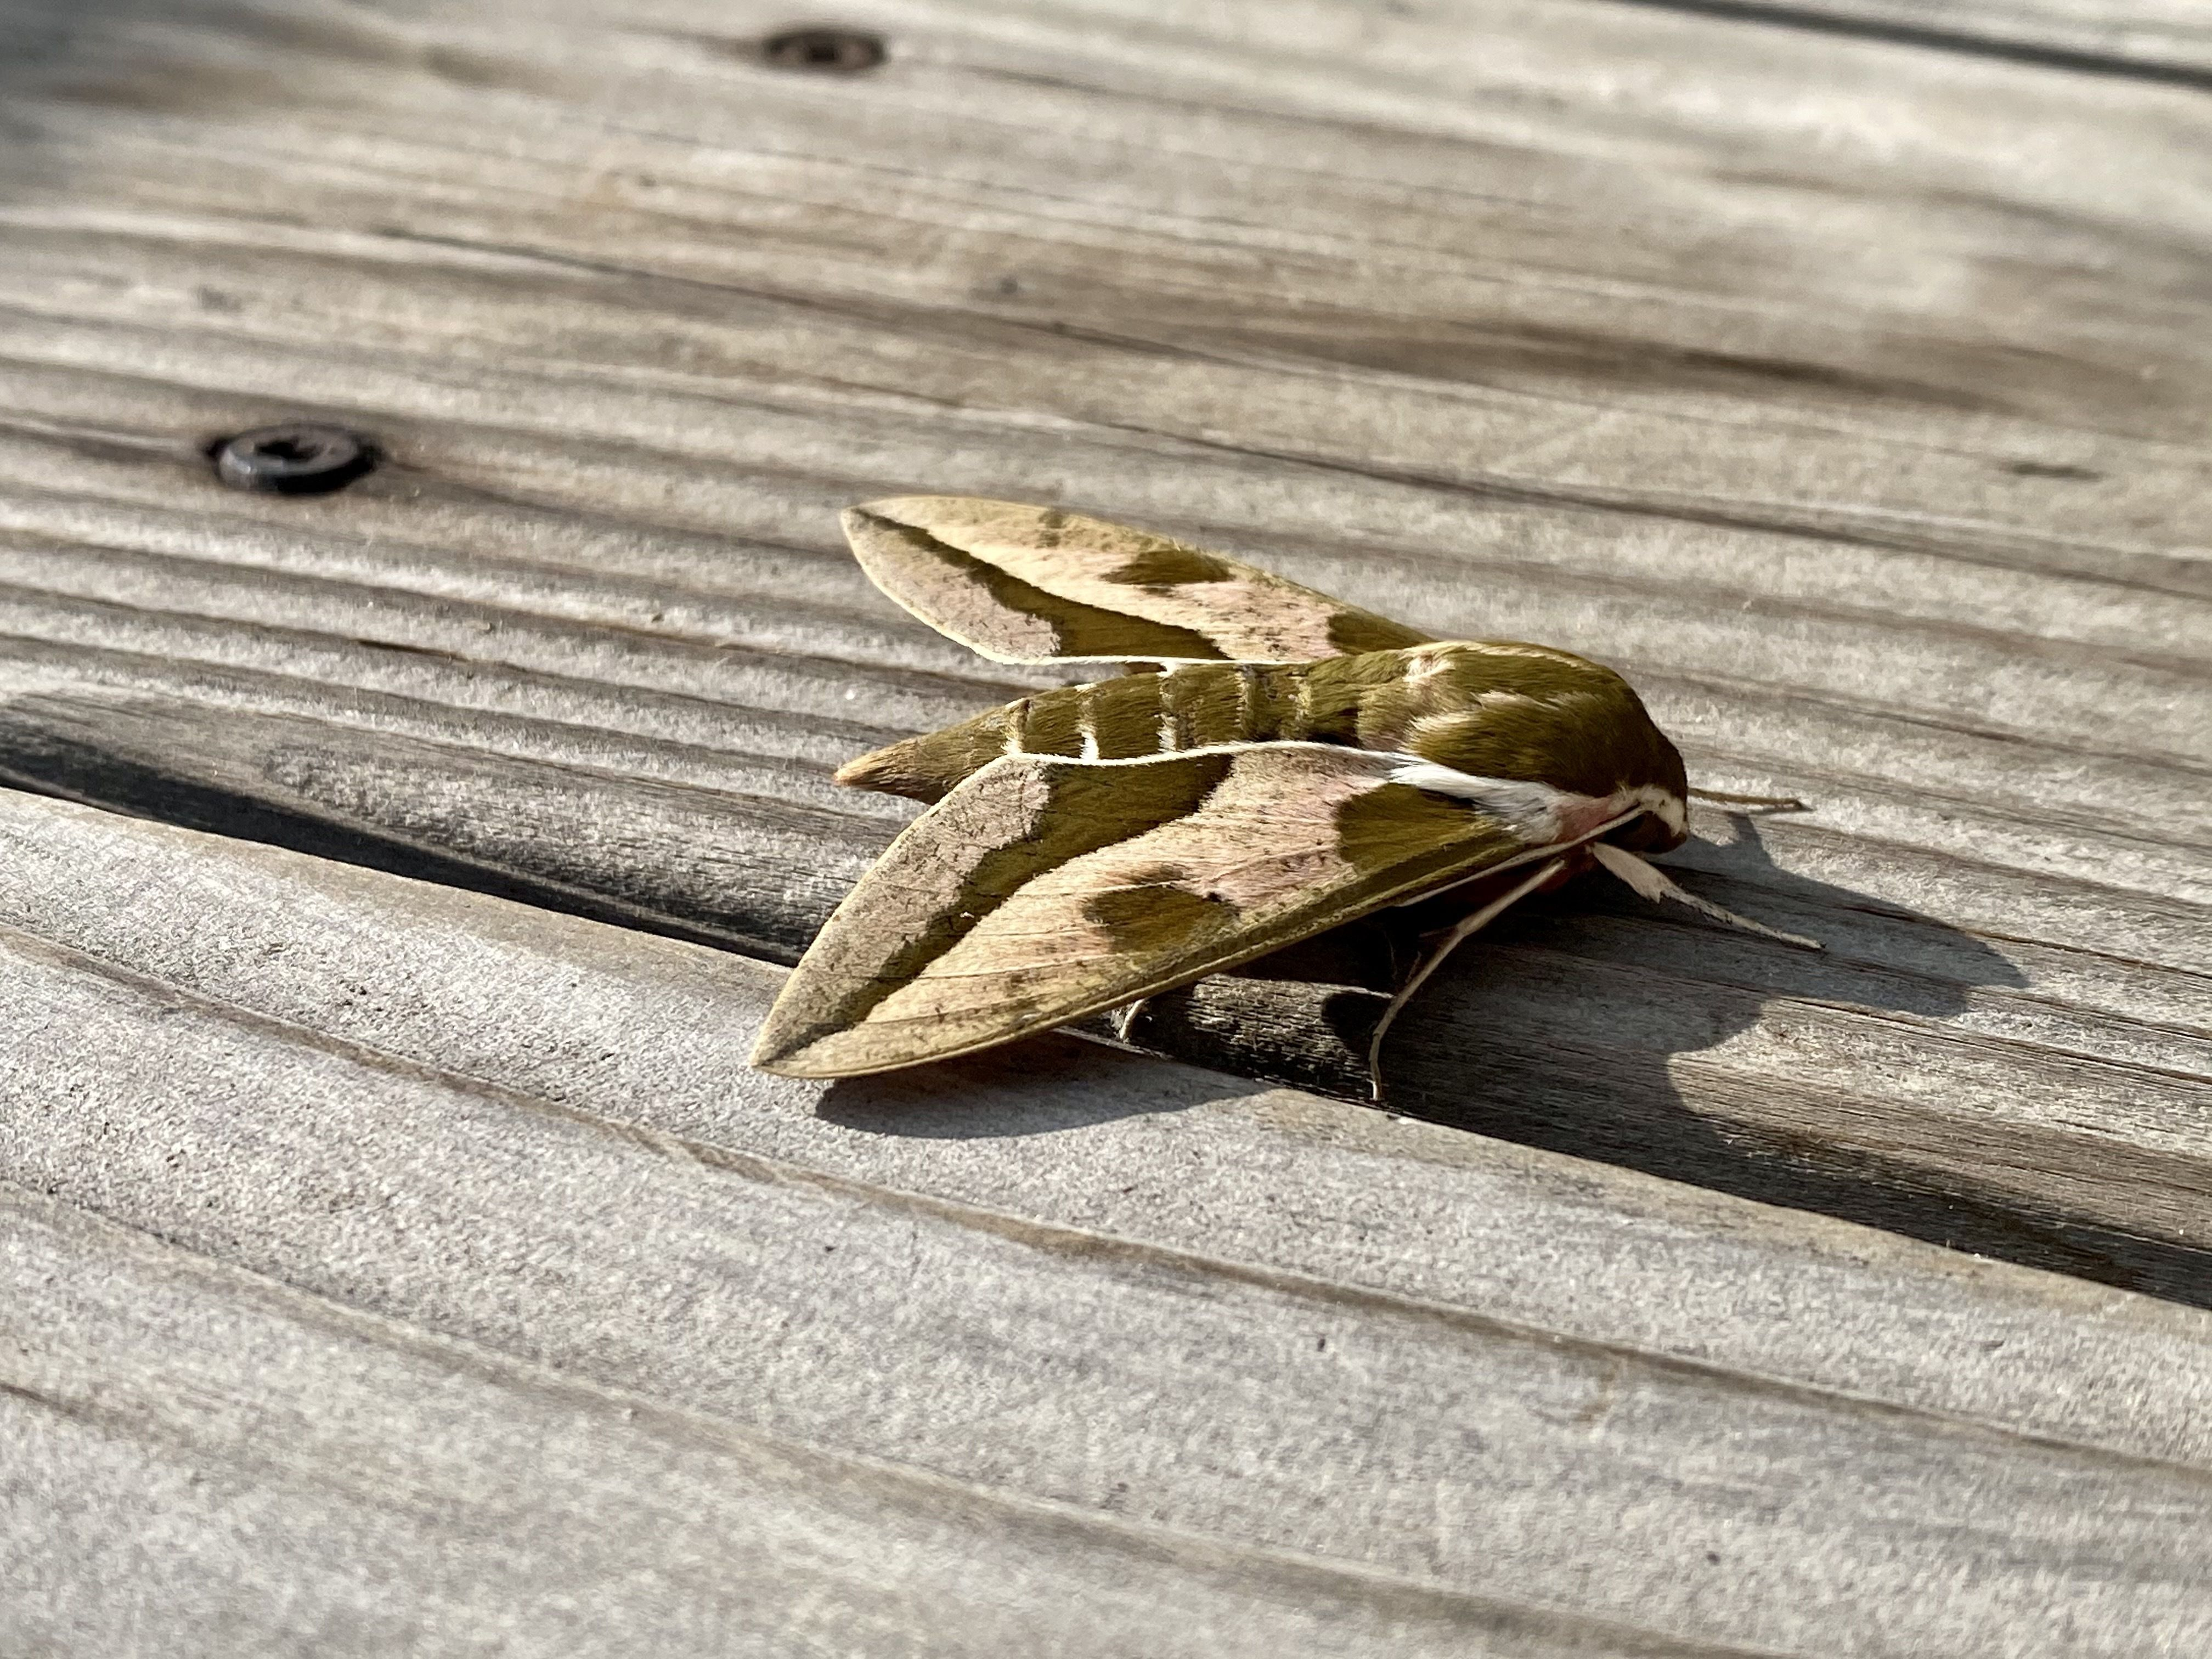 A photo of another angle of the moth